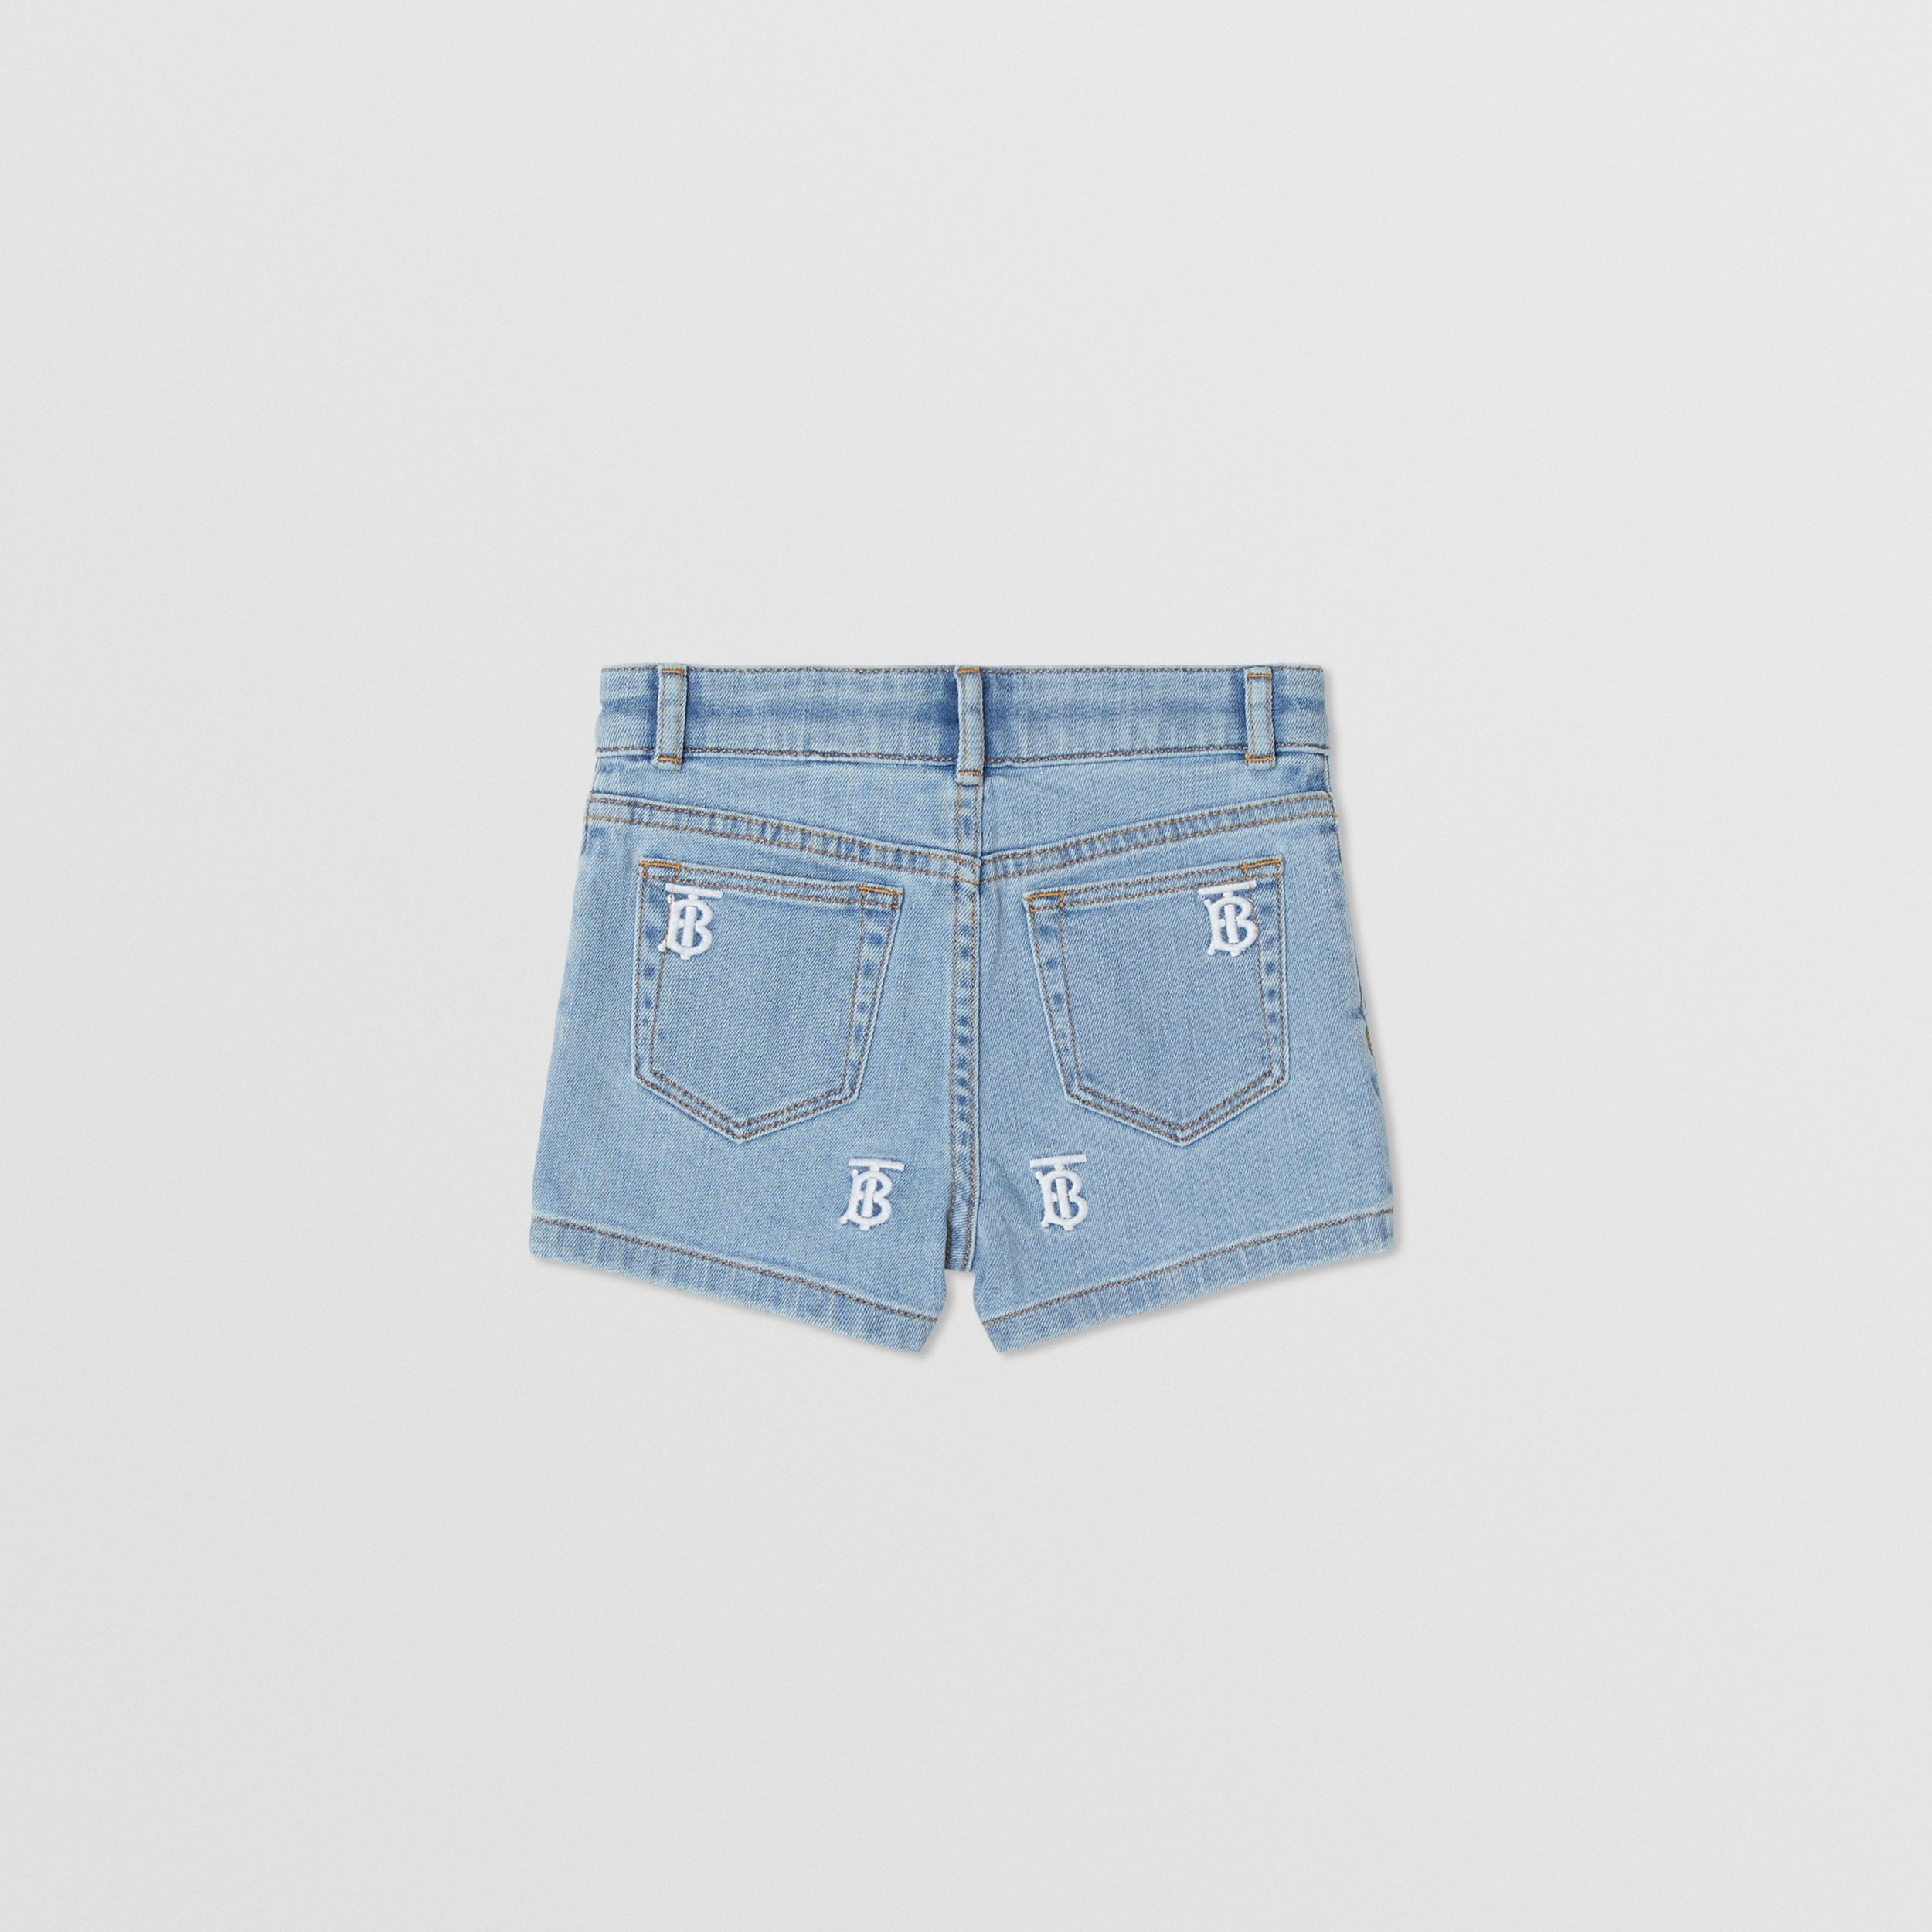 Monogram Motif Stretch Denim Shorts in Pale Blue | Burberry Canada - 4